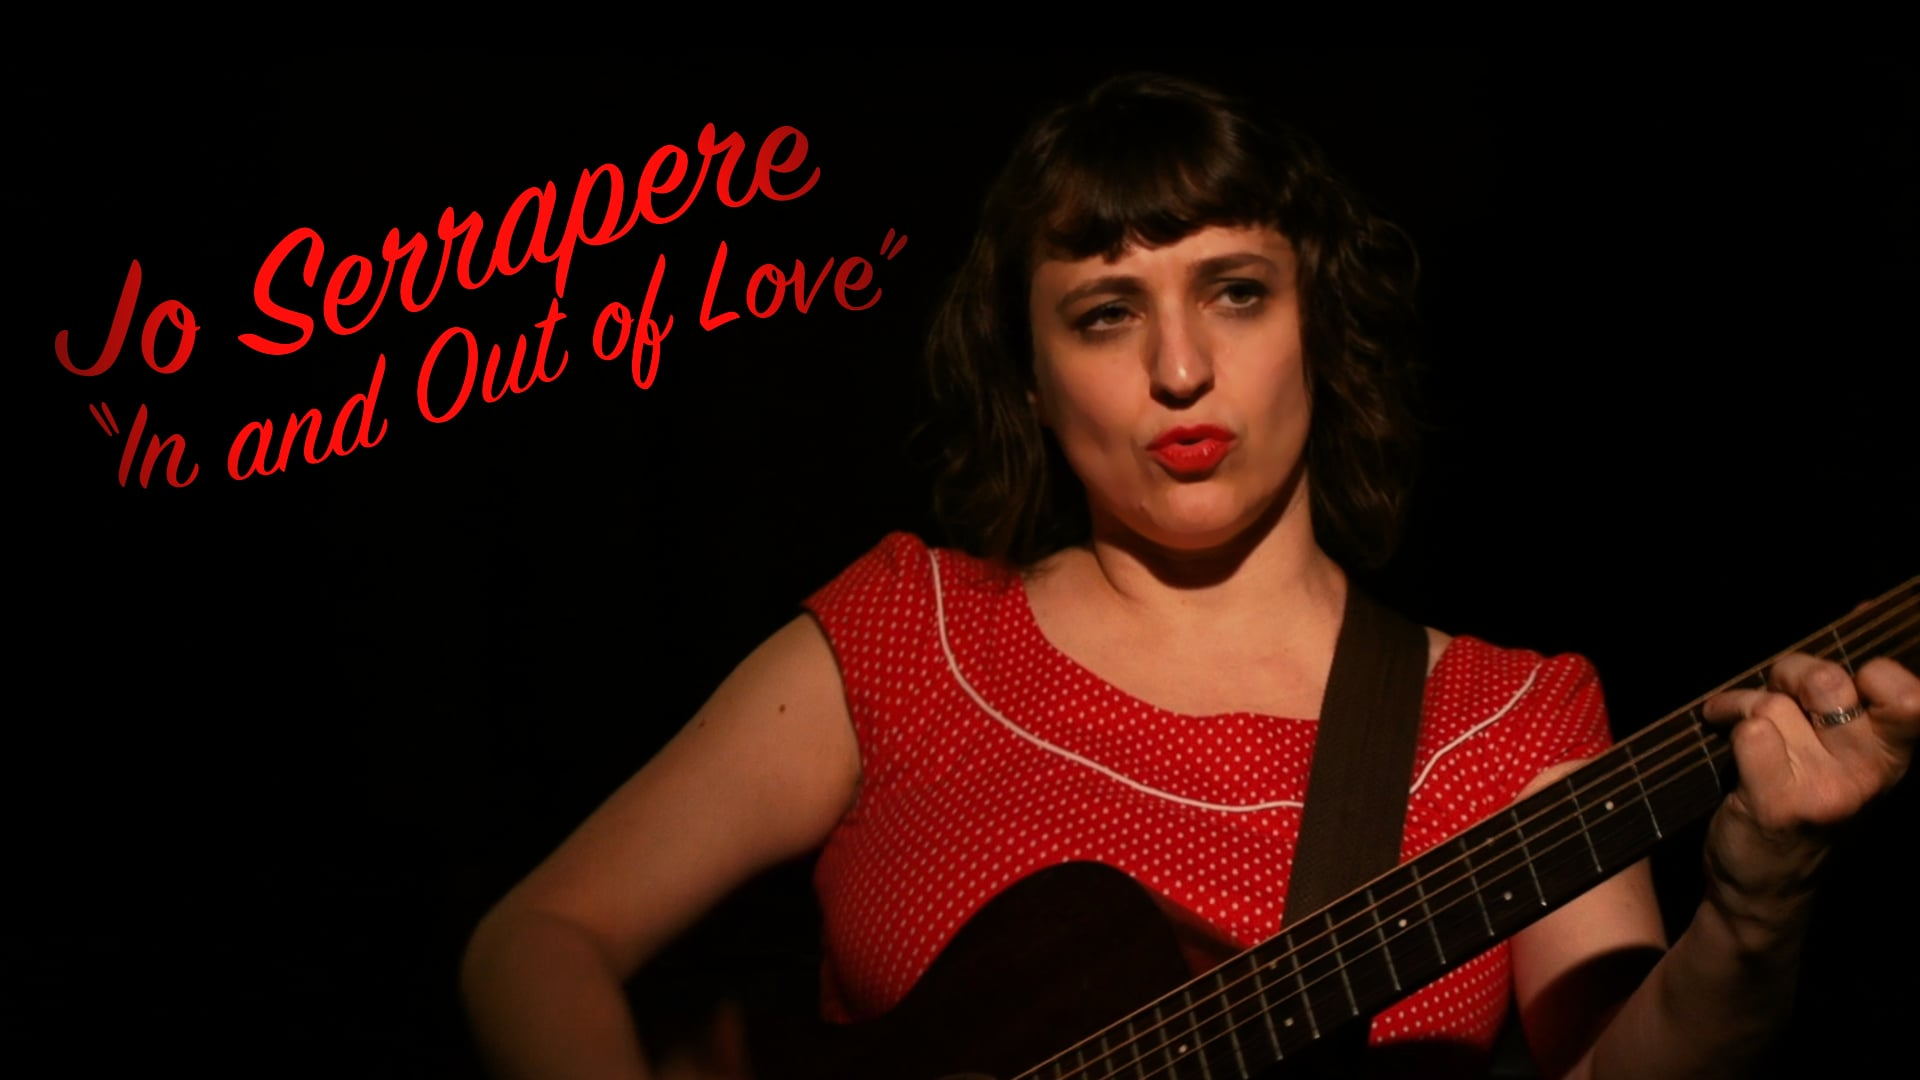 Jo Serrapere- In and Out of Love